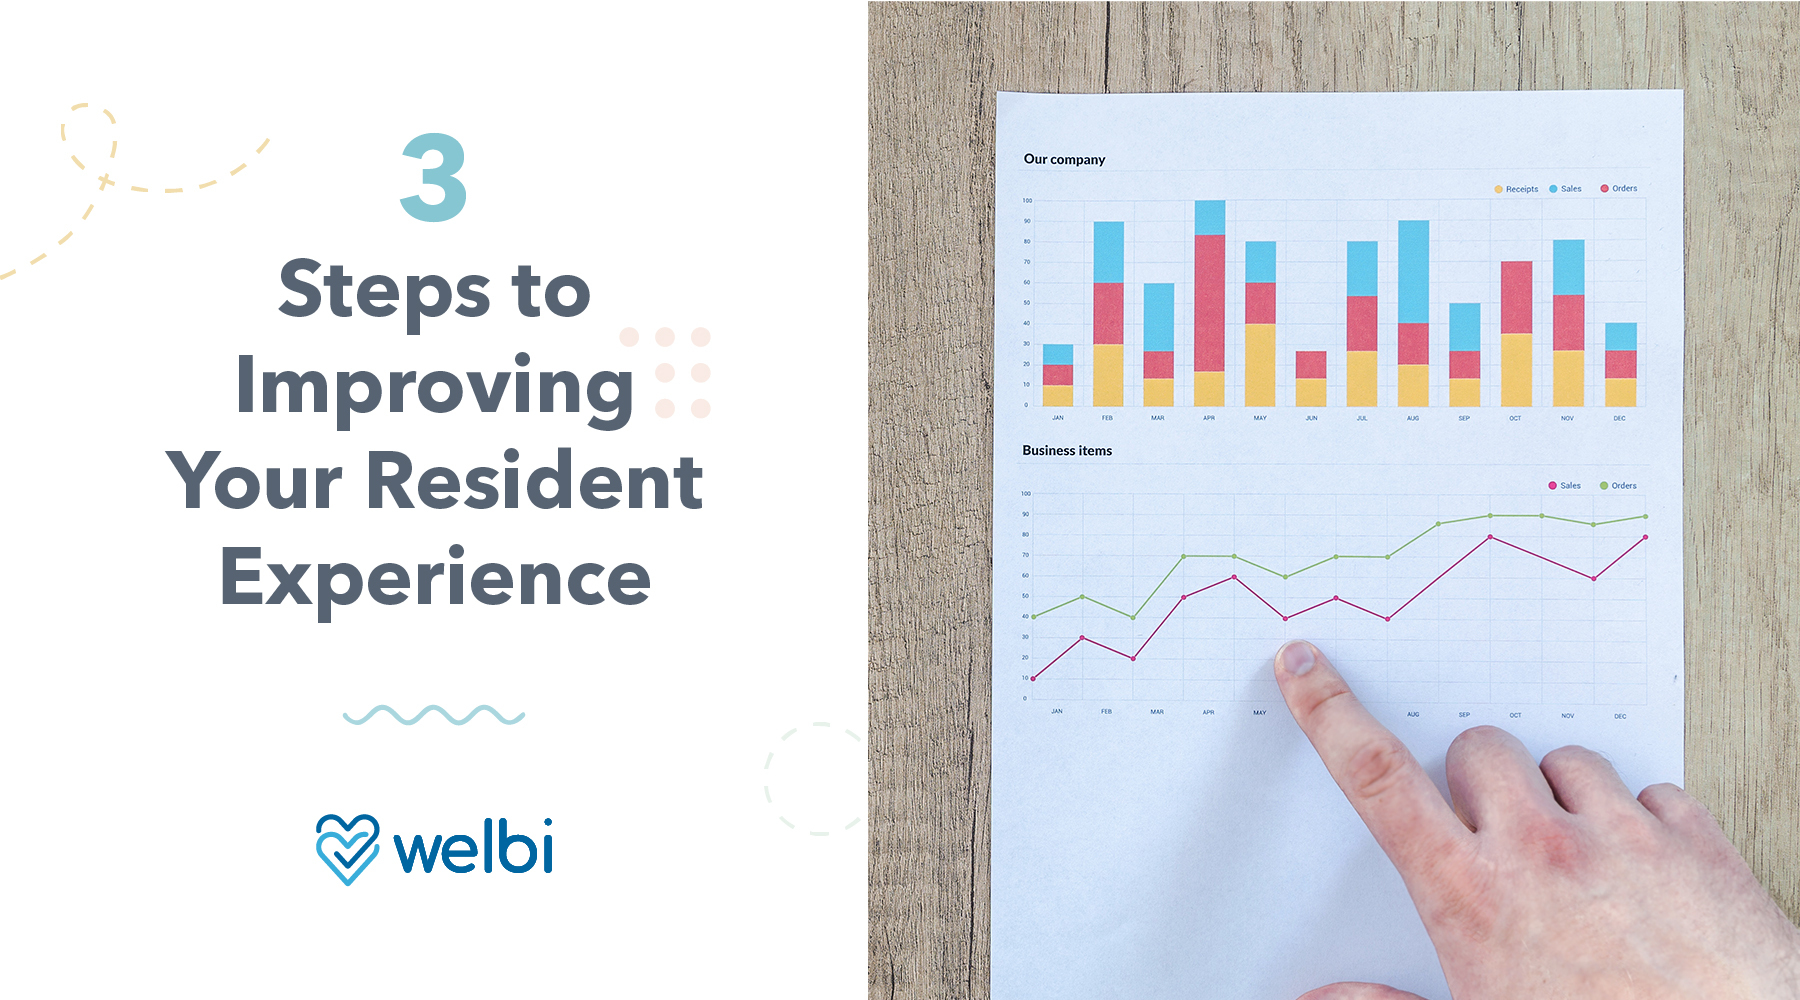 3 Steps to Improving Your Resident Experience